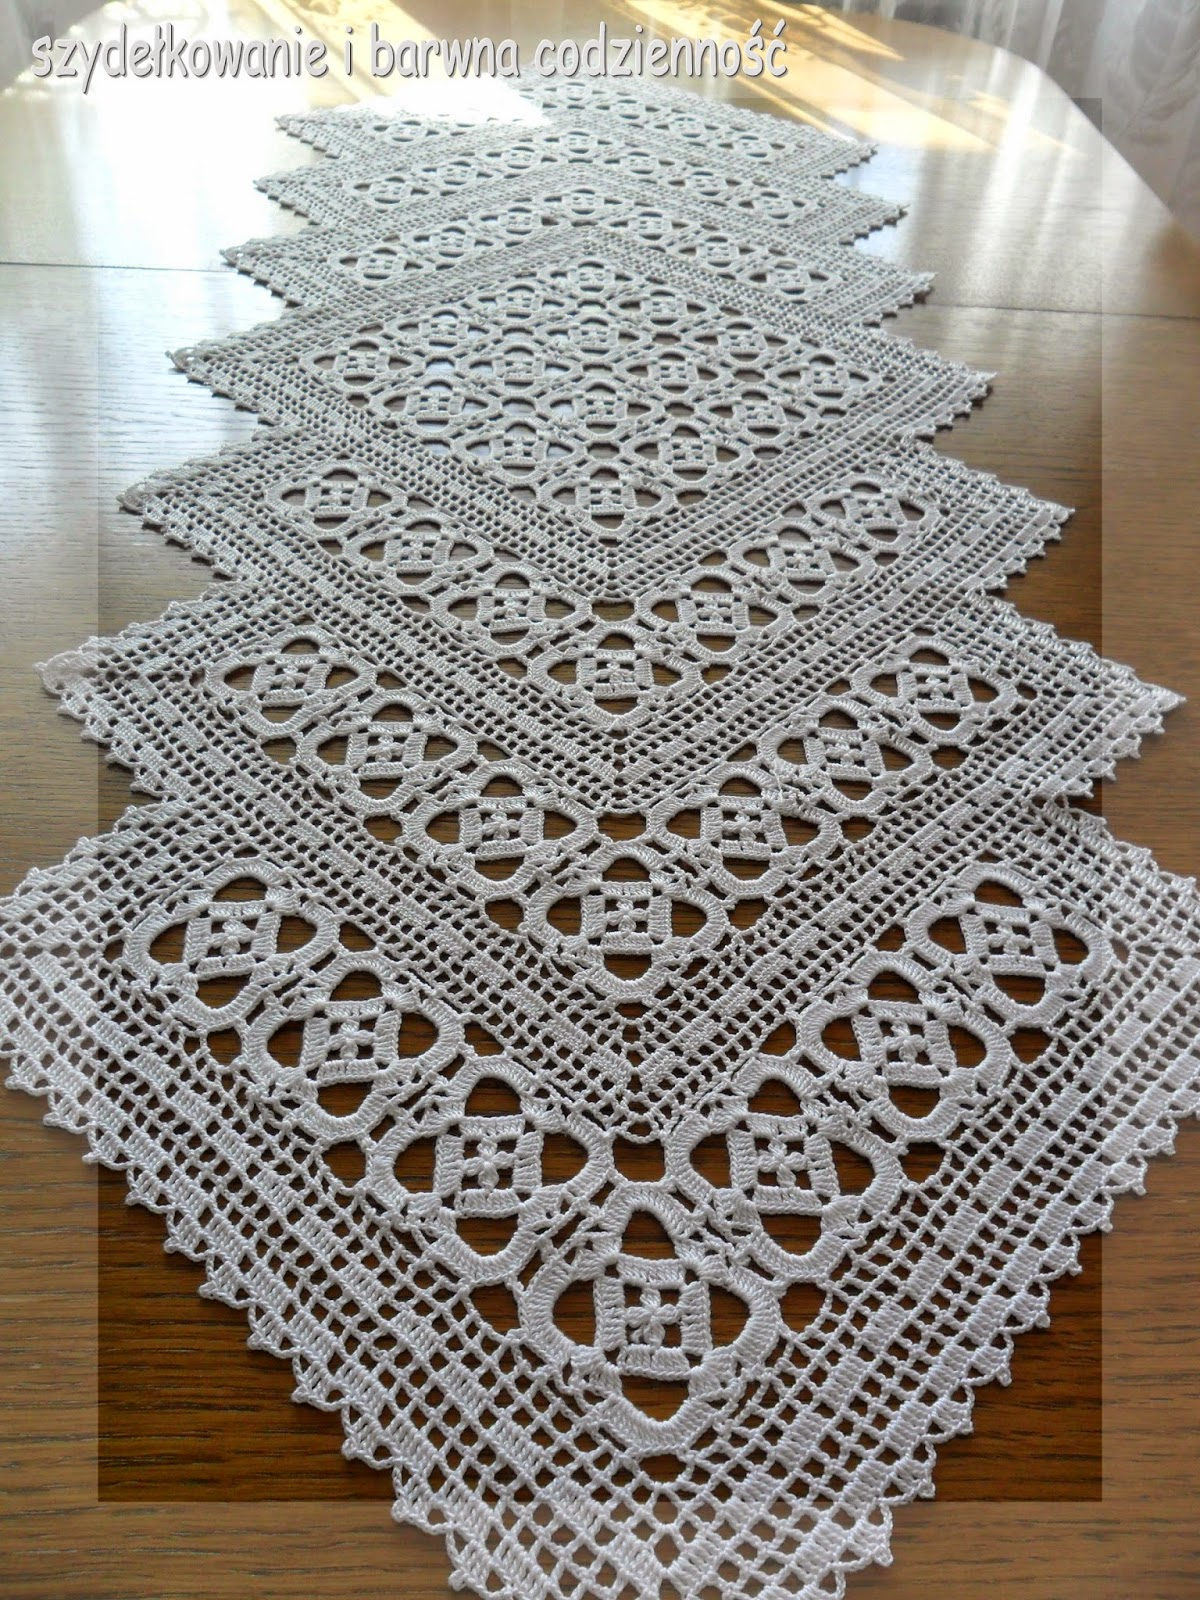 how to make crochet pattern diagram 2010 f150 xlt radio wiring ergahandmade doily 43 diagrams